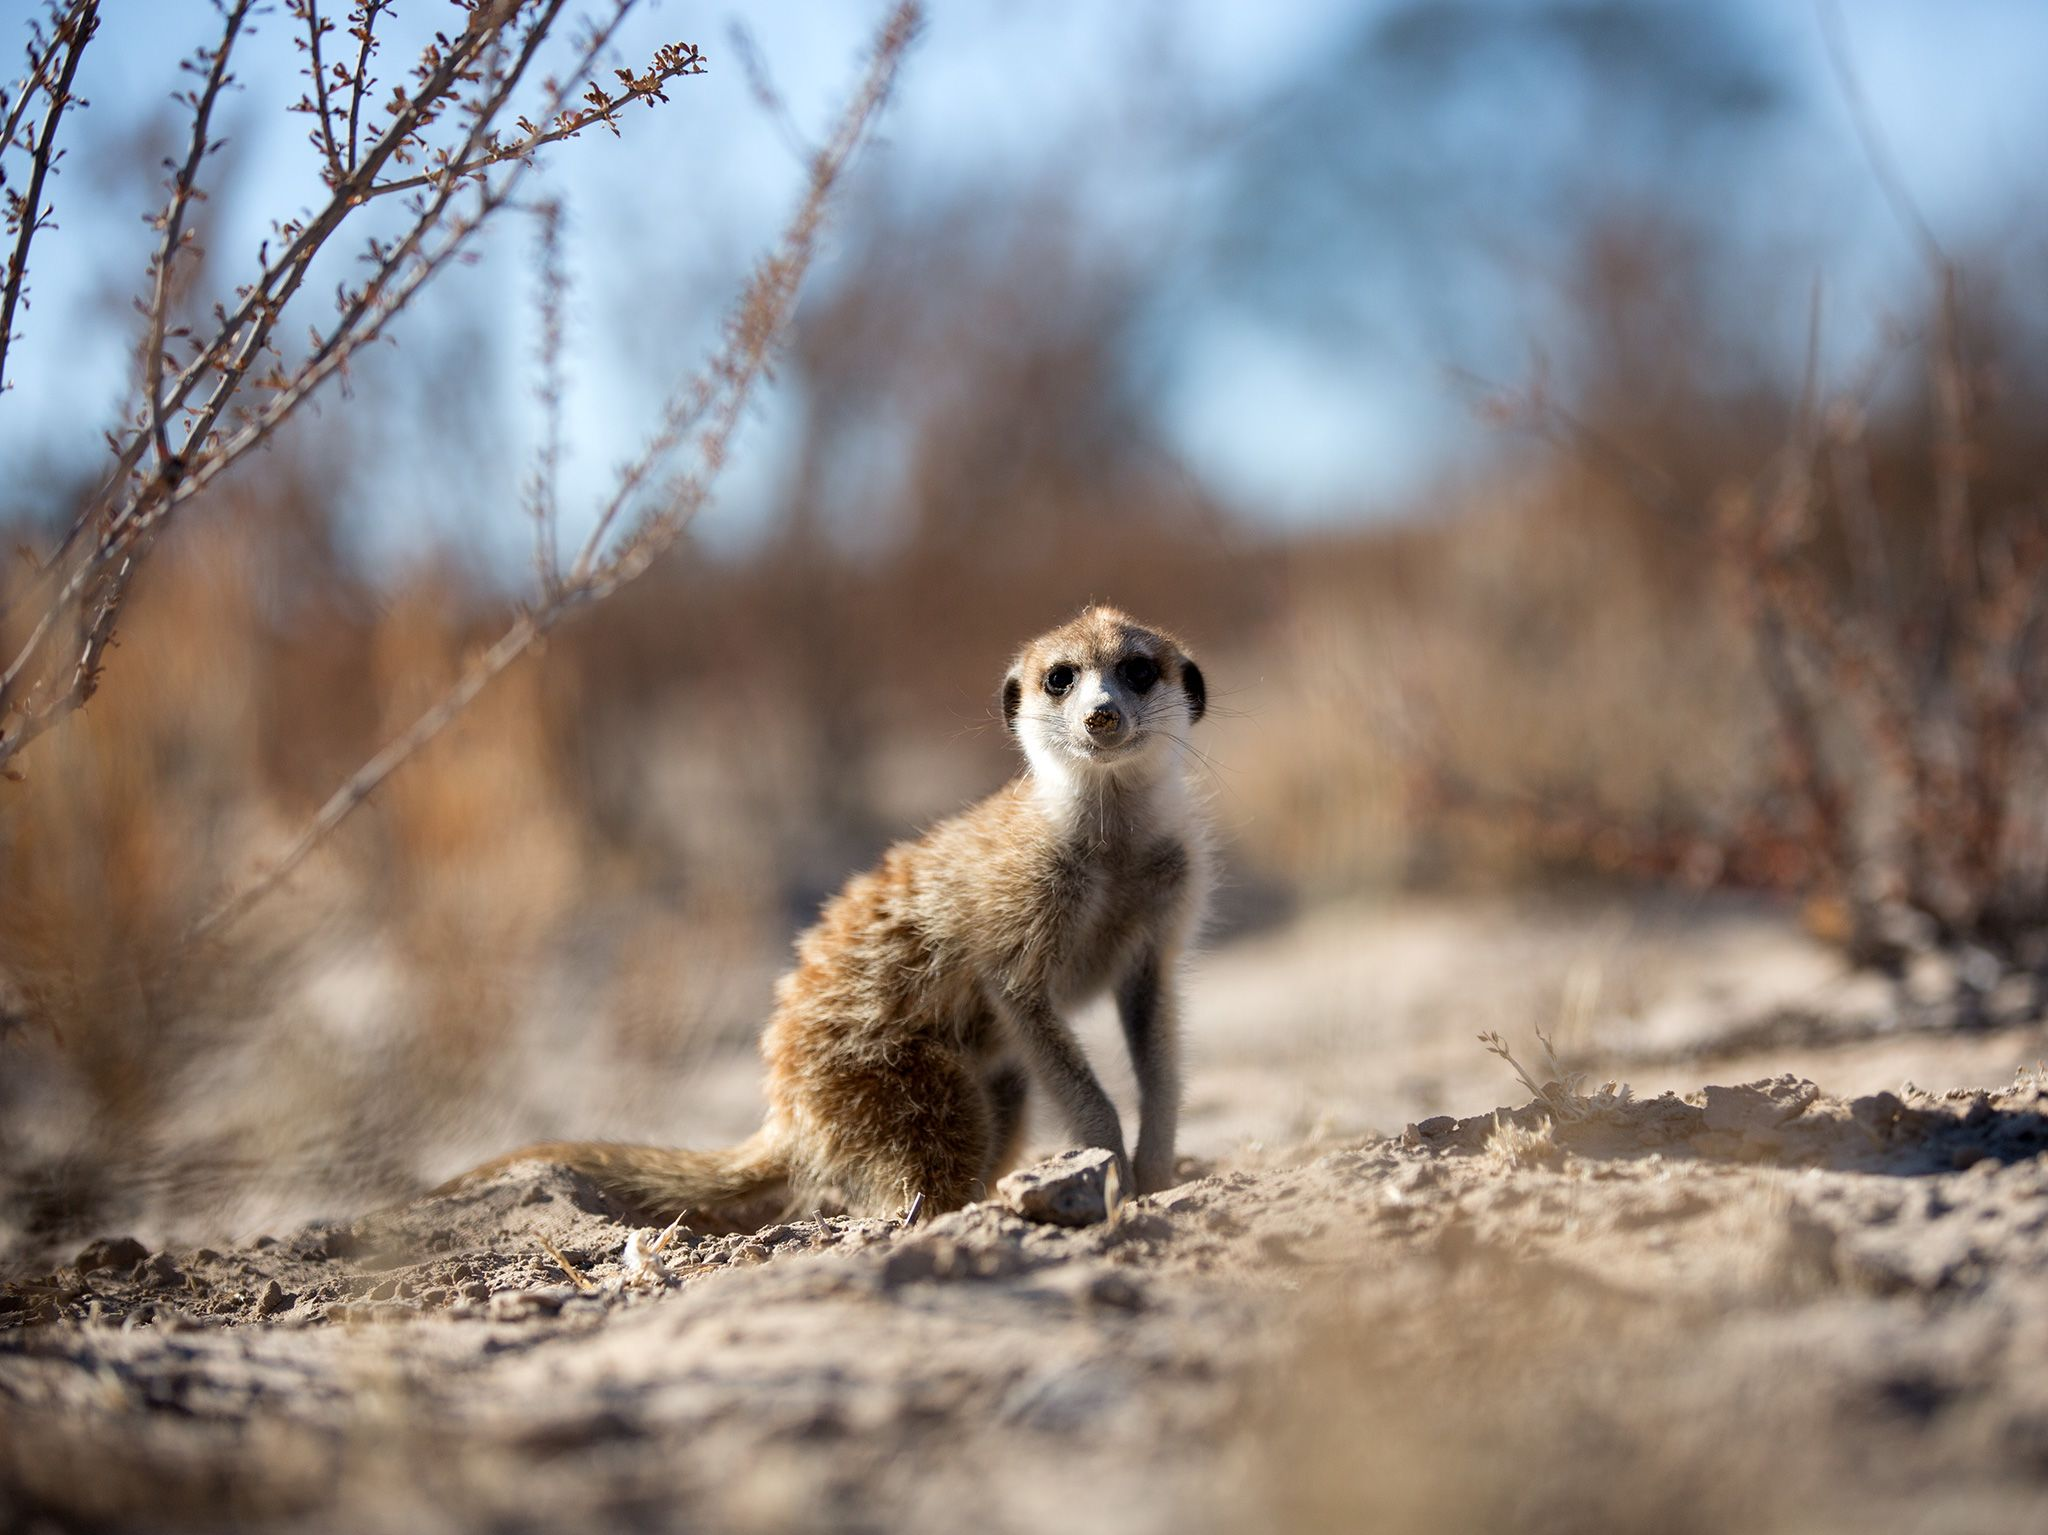 Portrait of a meerkat (Suricata suricatta) as it pauses in-between digging for grubs and insects... [Photo of the day - April 2020]